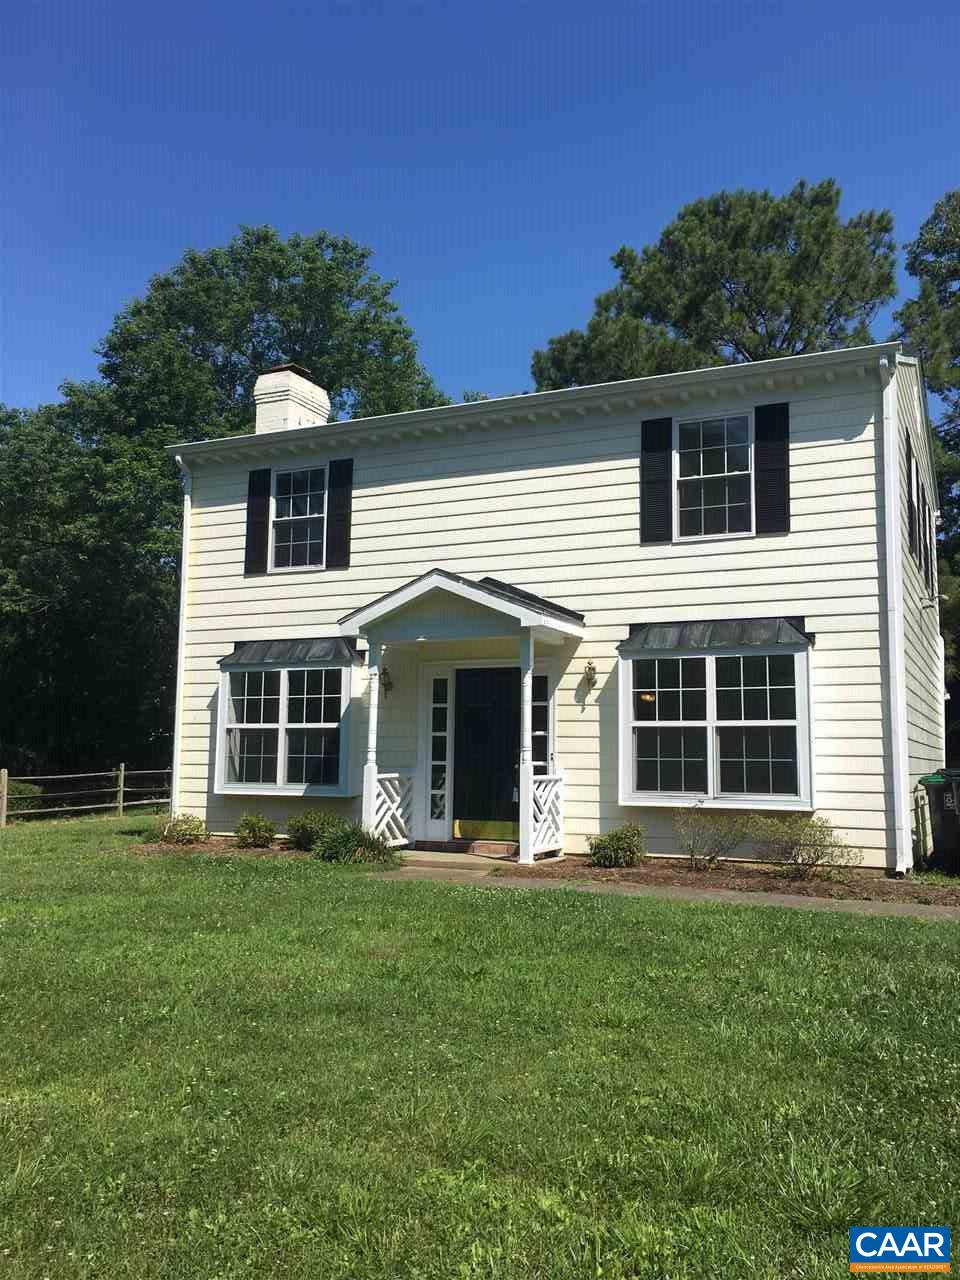 Location location location! Colonial style home convenient to schools, NGIC, UVA with the largest lot on the street.  Lots of room to expend the home on both sides of the house. Fresh paint, roof about 5 years old, Ac about 3 years, new Kitchen 1 years old, Screened in back porch,  convenient to shops, Nice walking trails and lakes. Situated between Forest lakes north and south. Owner willing to do a lease purchase if buyers need time to close. owner agent.